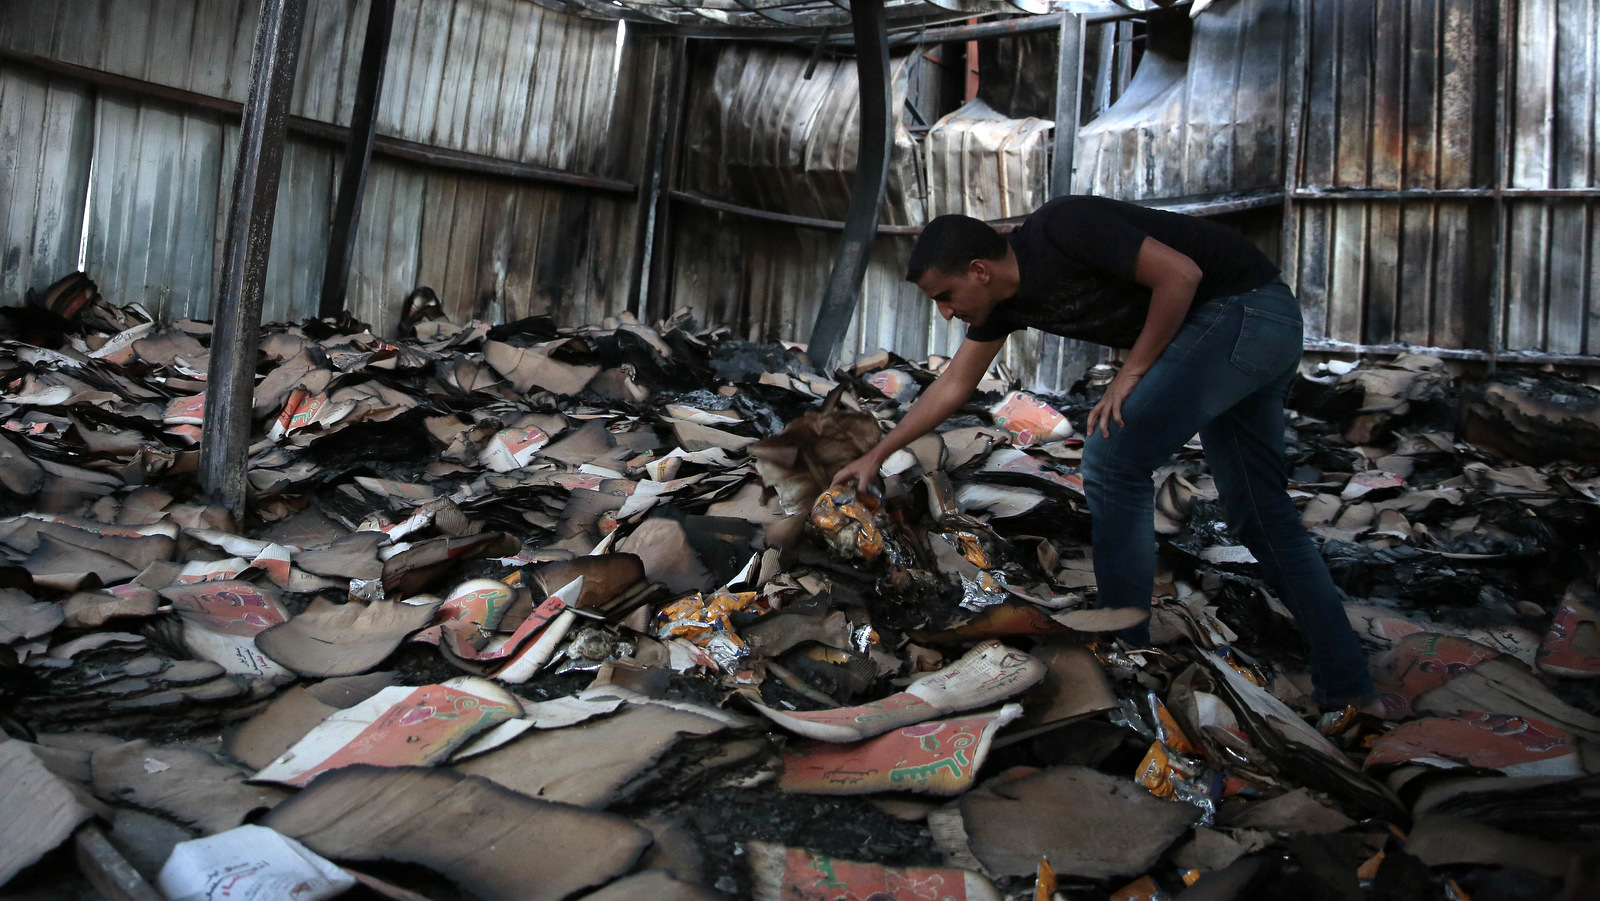 A man inspects a food factory hit by Saudi-airstrikes, in Sanaa, Yemen. Human rights experts say there has been a pattern by the Saudi-coalition in failing to distinguish between civilian and military targets and disregarding the likelihood of civilian casualties, likely amounting to war crimes. (AP/Hani Mohammed)